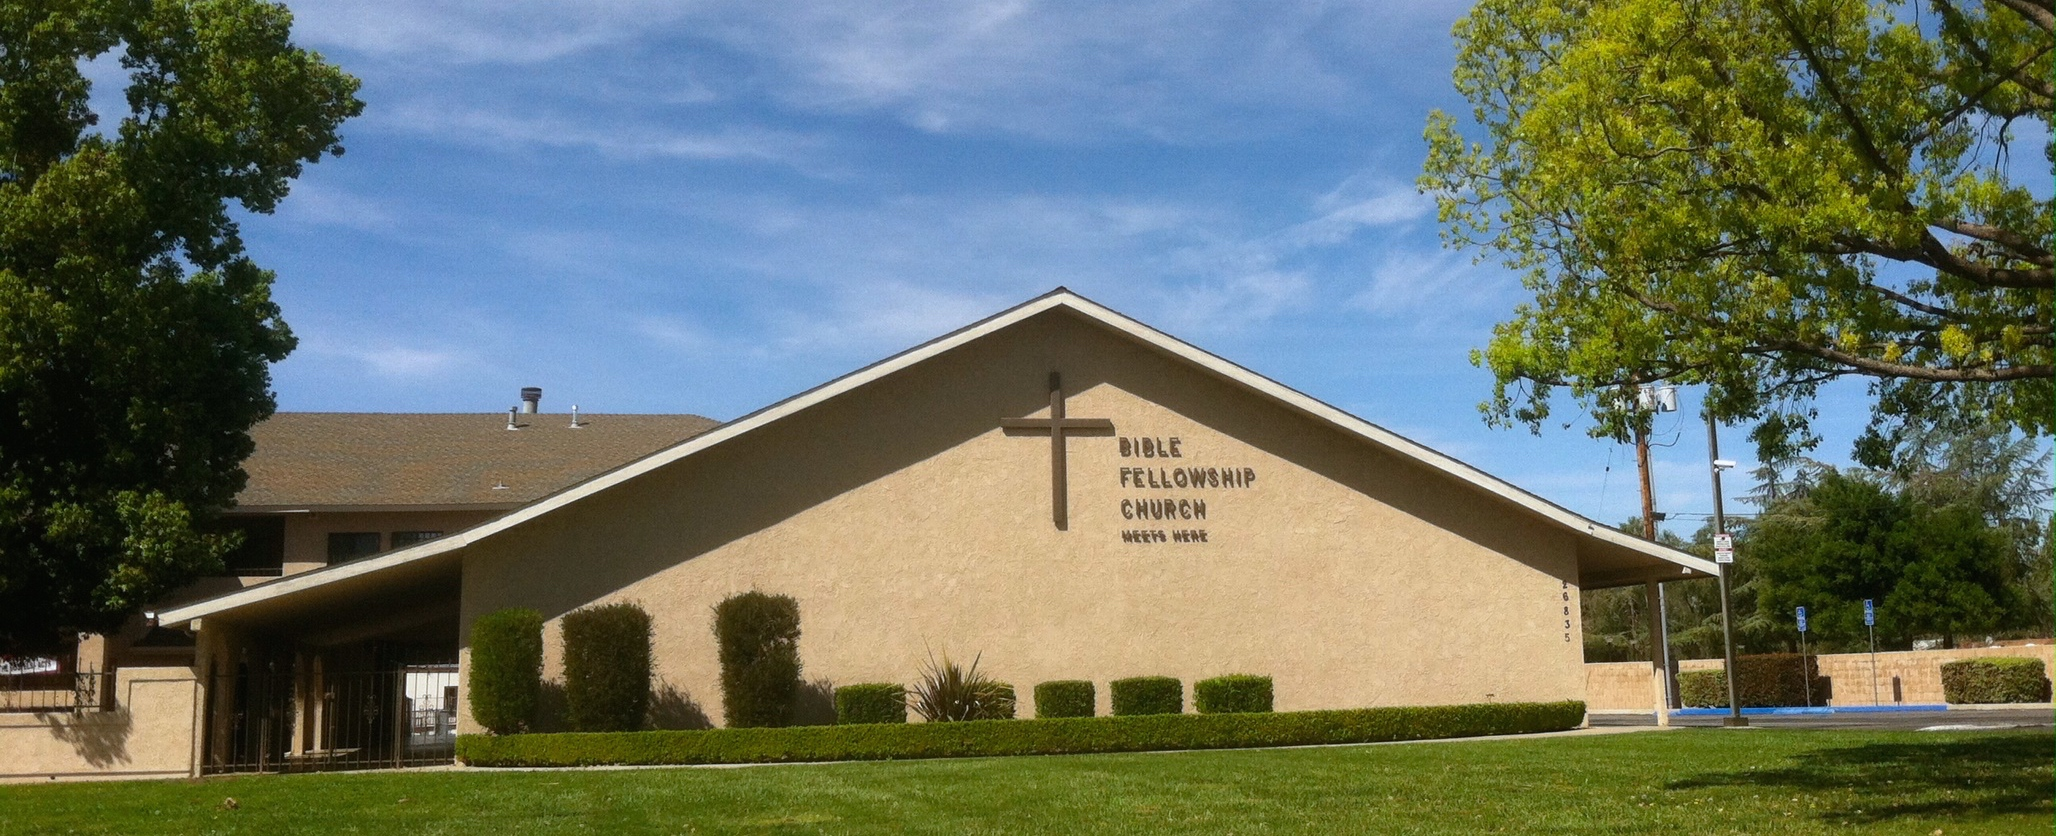 image_of_Bible_Fellowship_Church